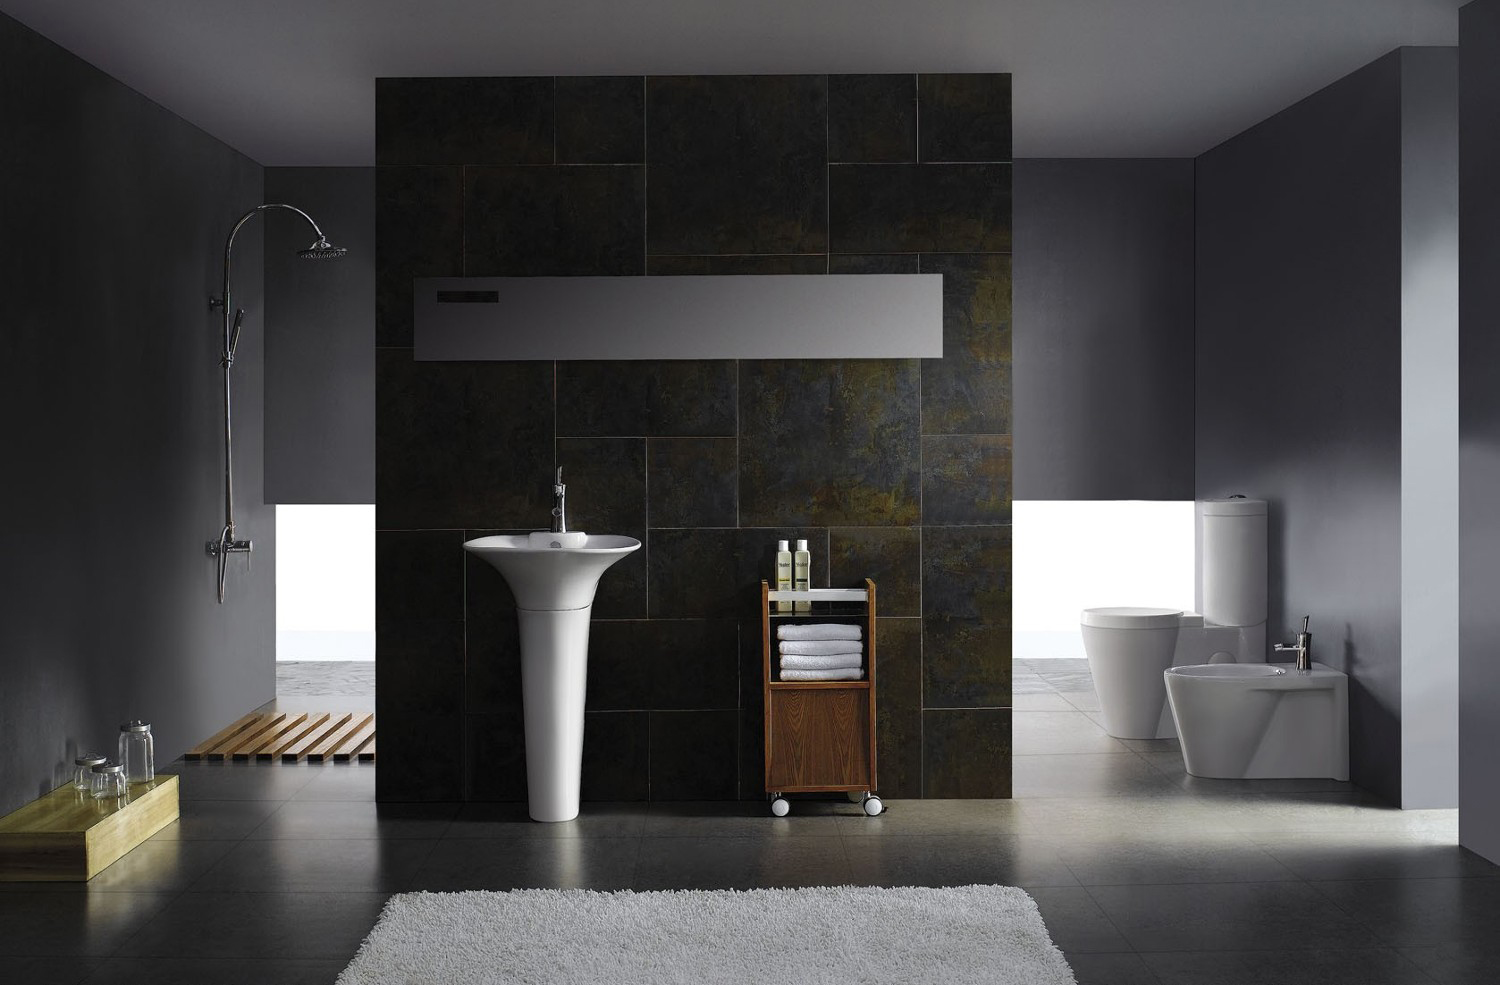 aversa modern bathroom toilet. Black Bedroom Furniture Sets. Home Design Ideas